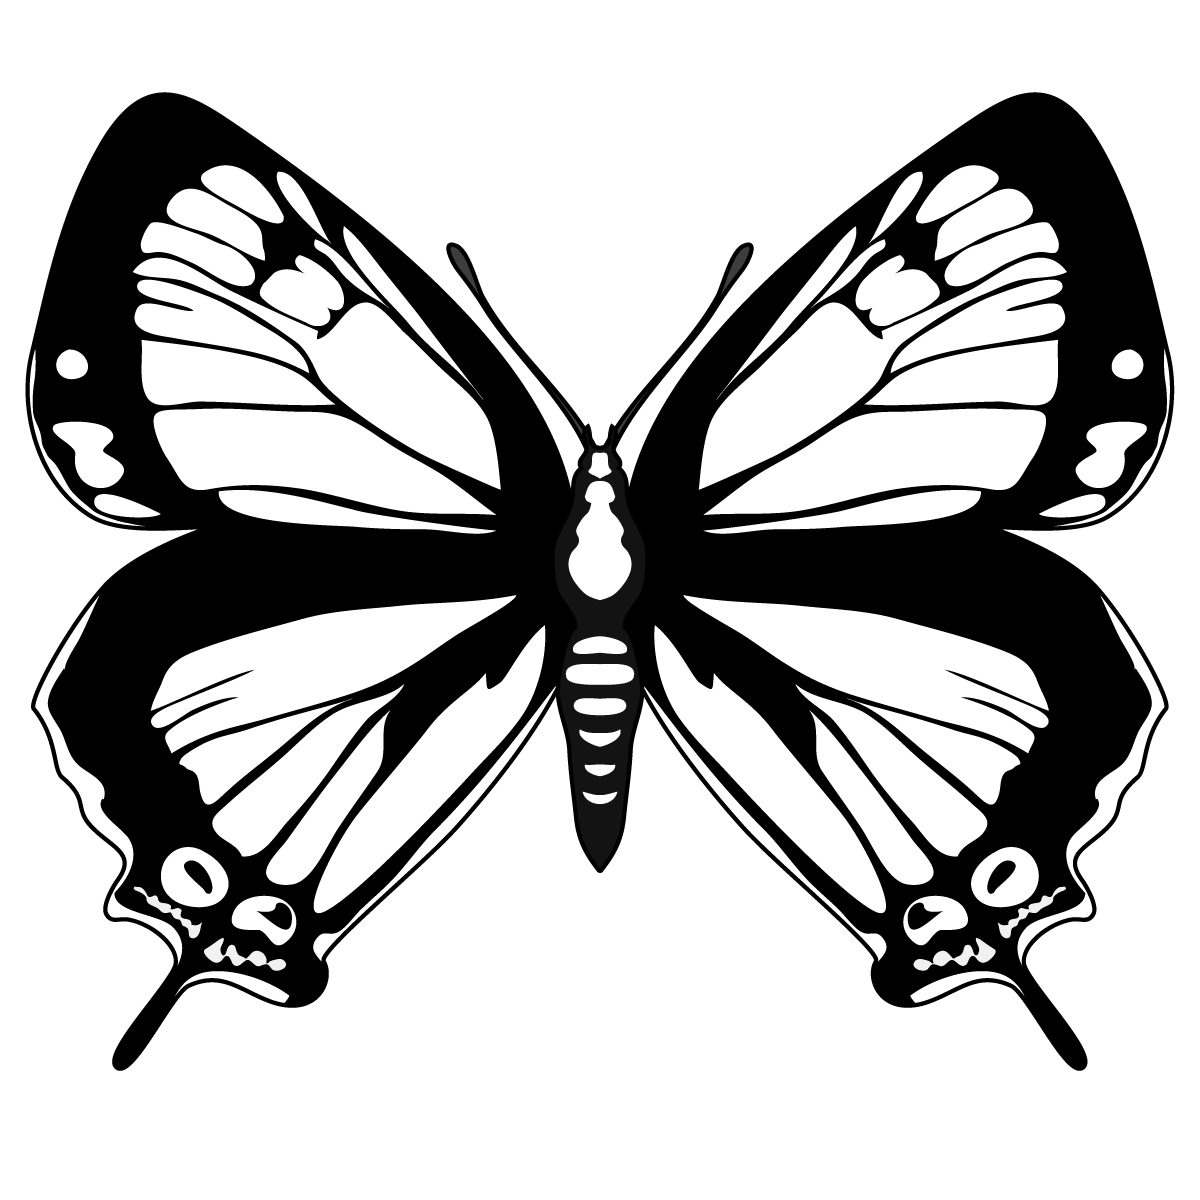 Butterfly image free clipart best for Robert munsch coloring pages